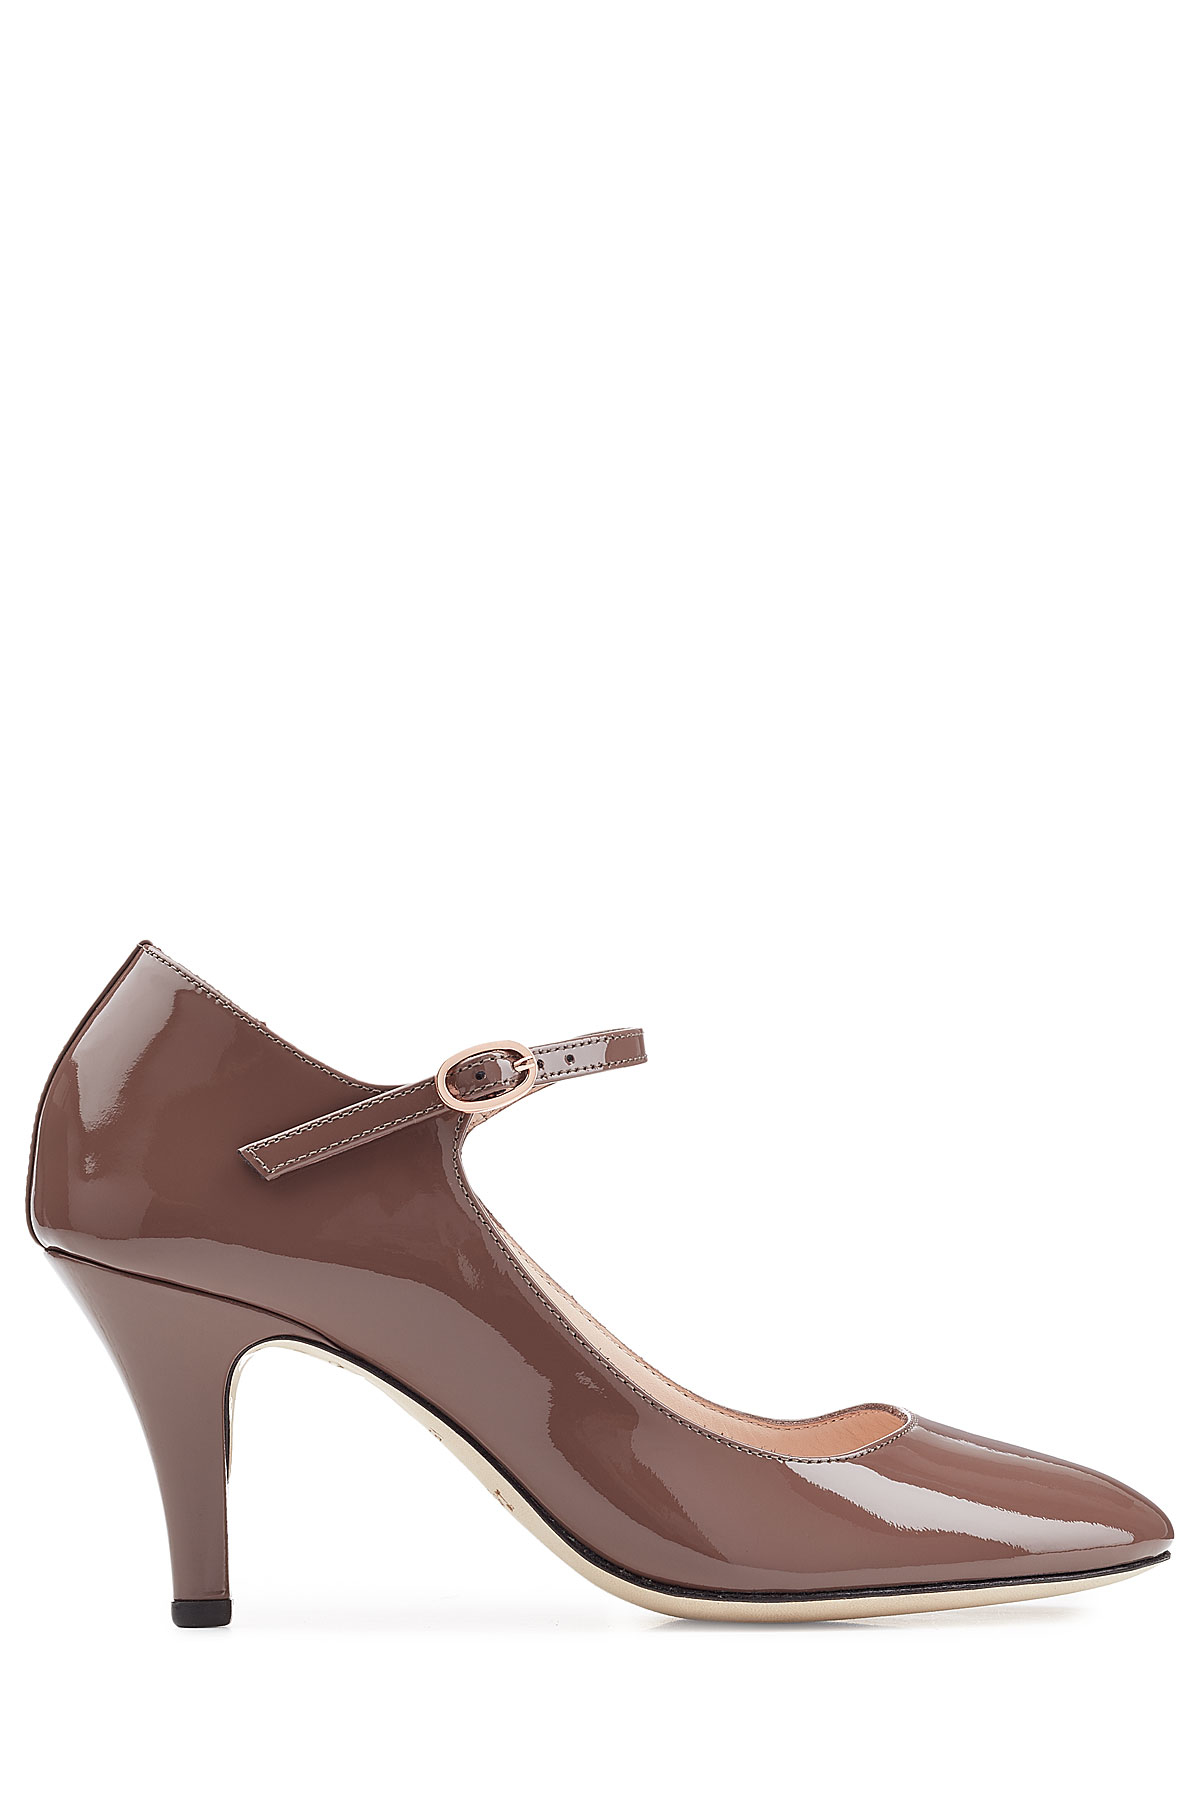 Lyst Repetto Patent Leather Pumps Brown In Brown